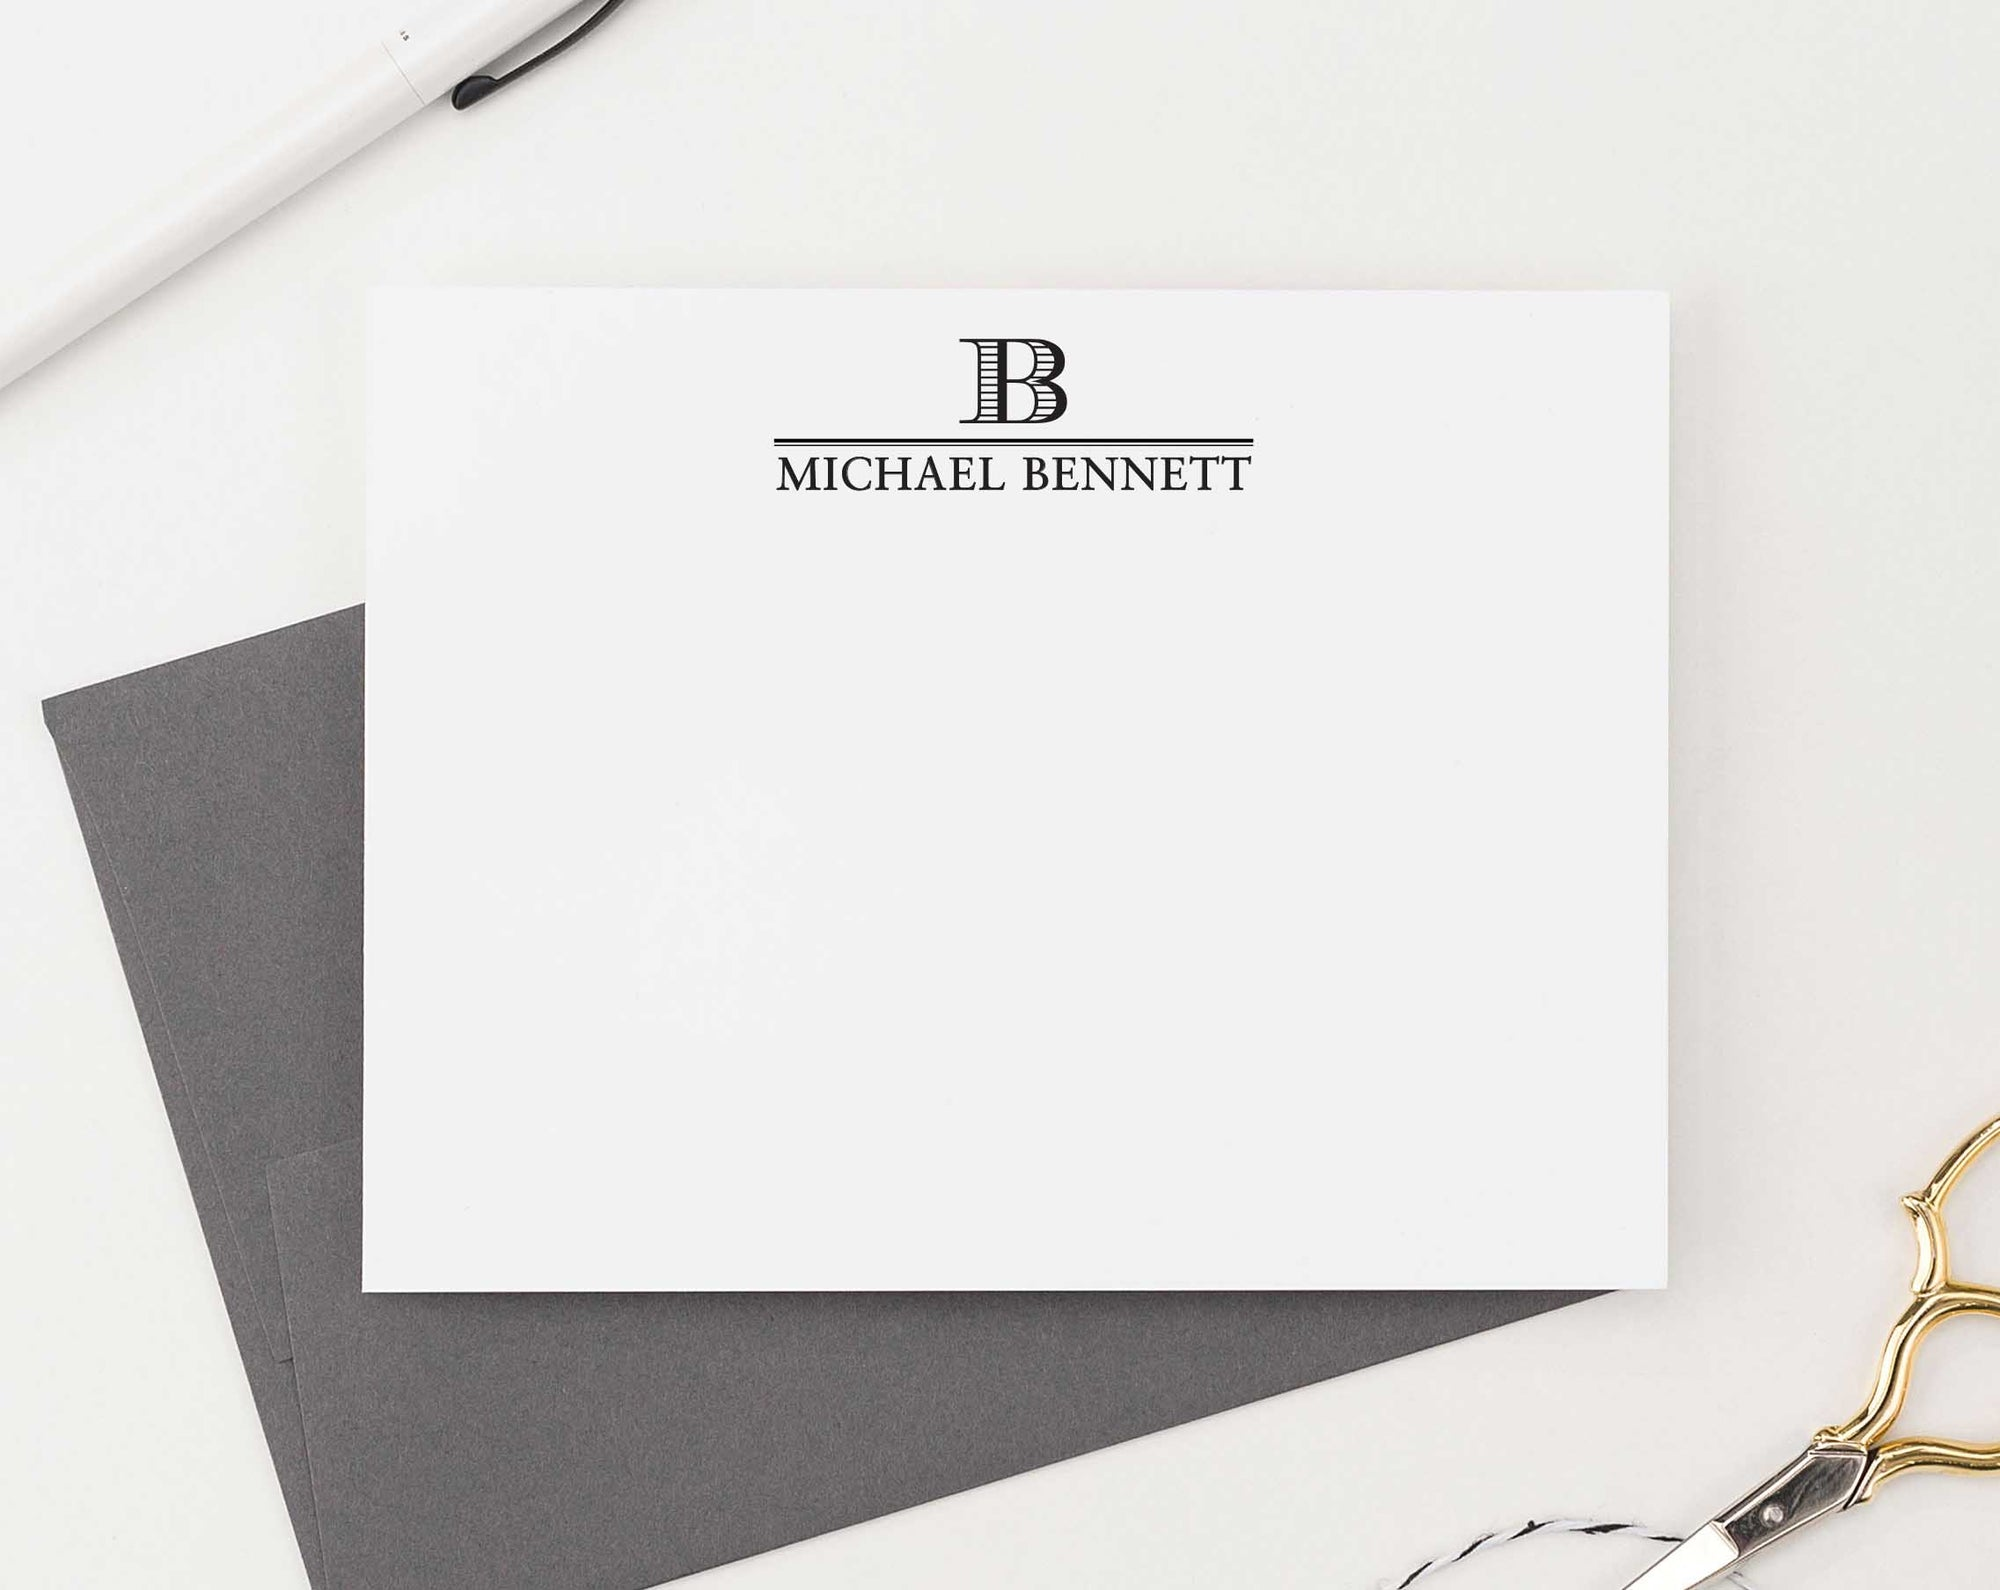 MS034 classic 1 initial monogramed notecards set personalized stationery professional